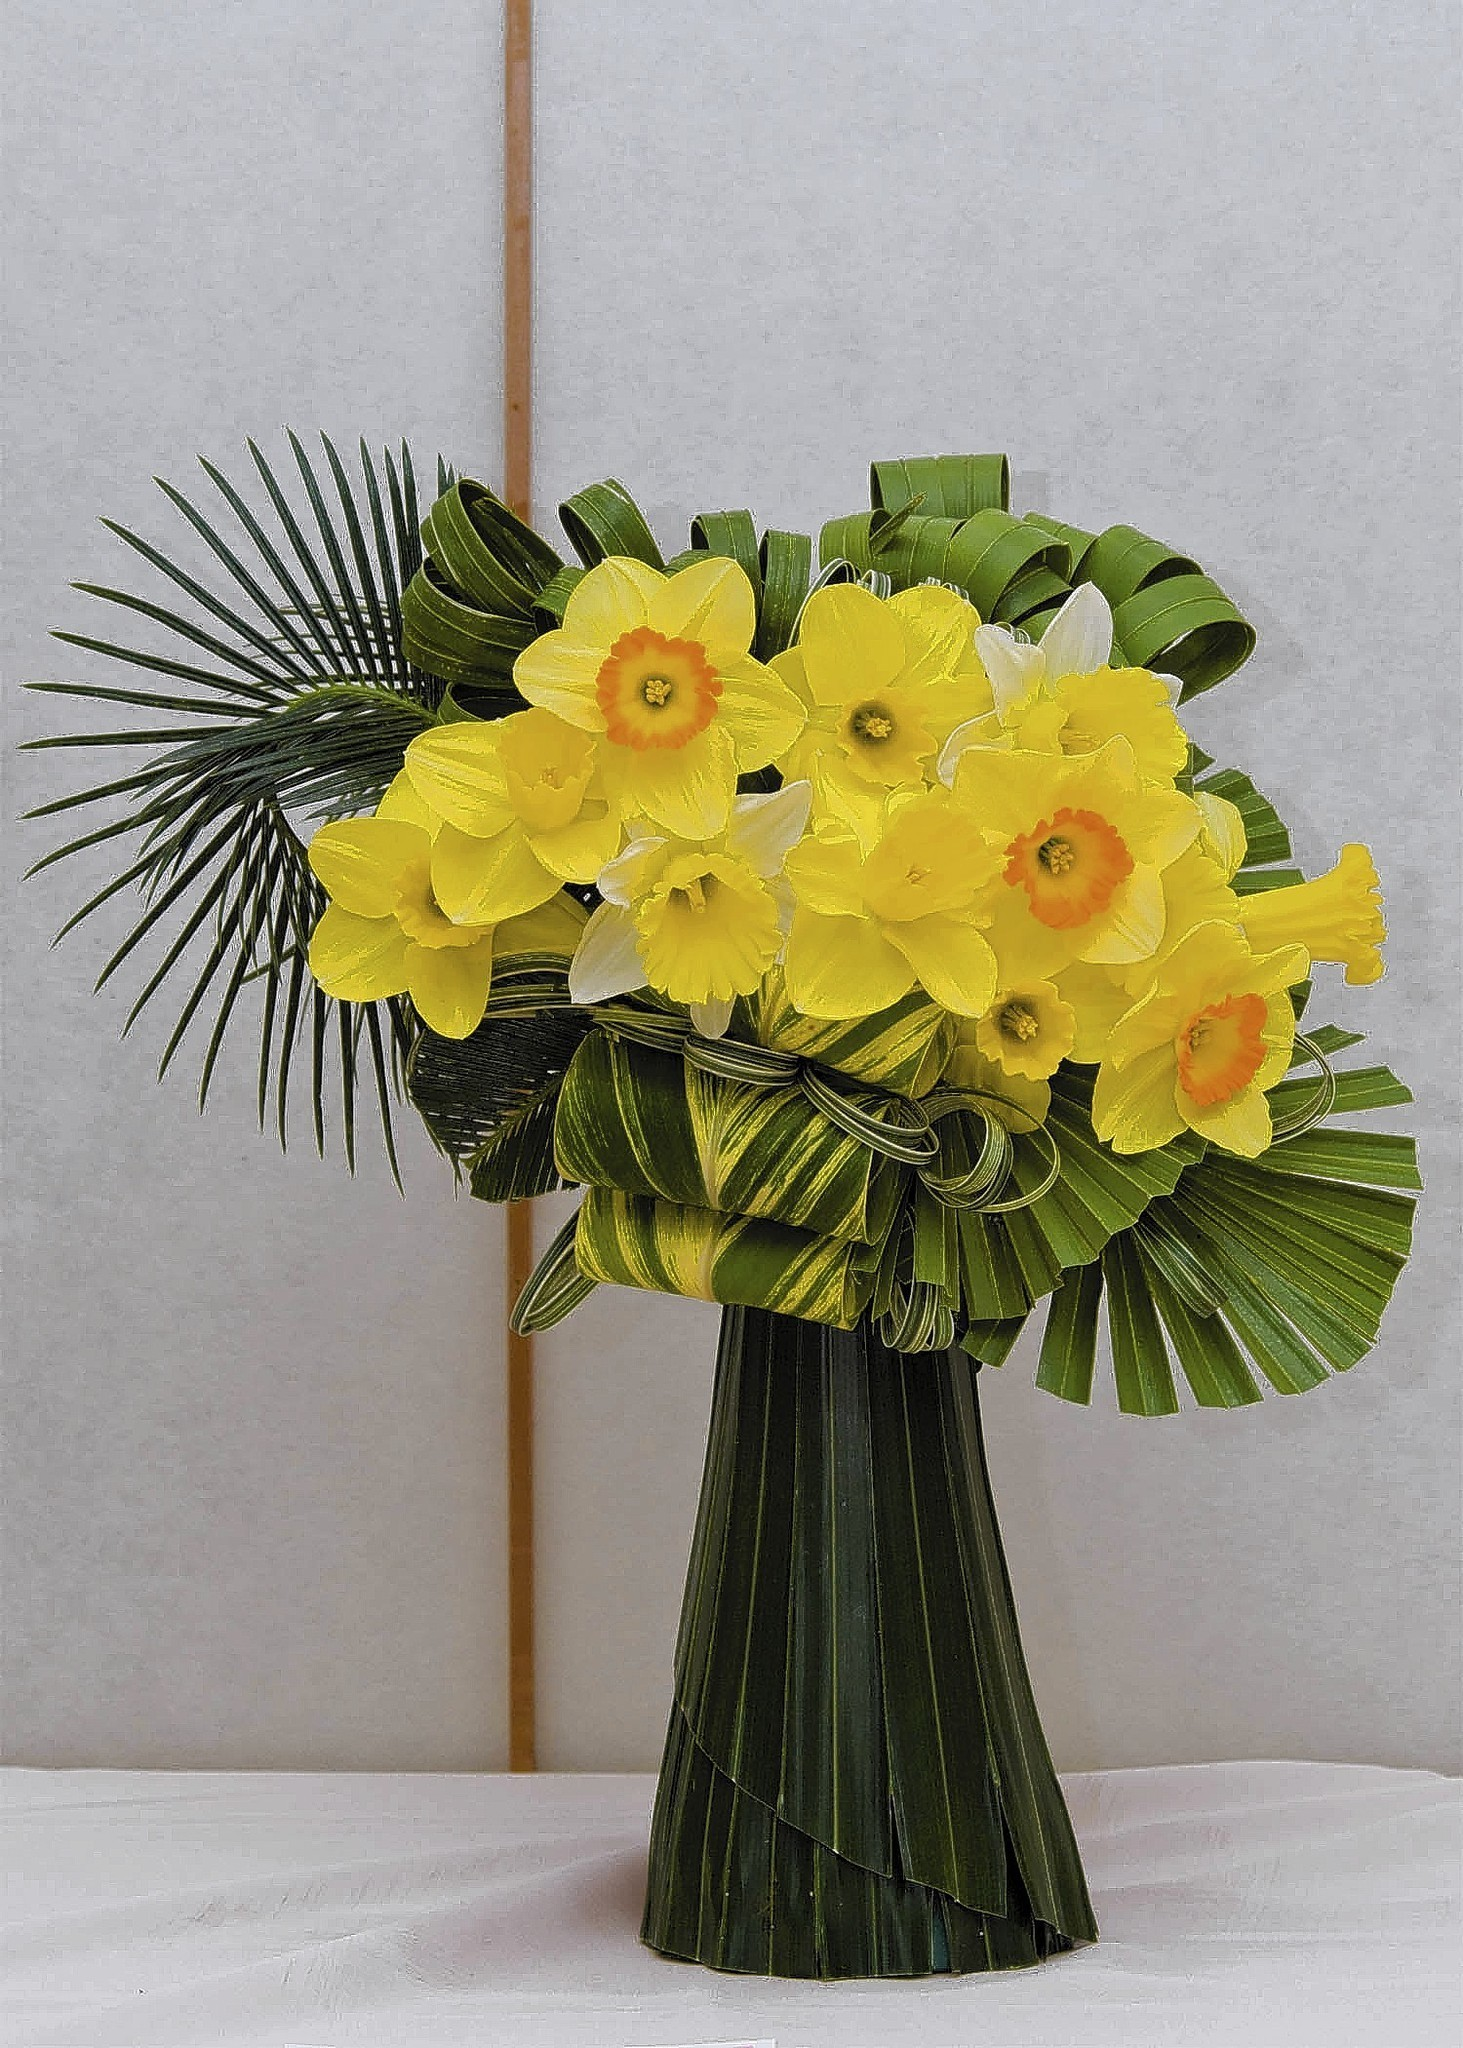 Simple Steps Can Extend Vase Life Of Fresh Cut Flowers